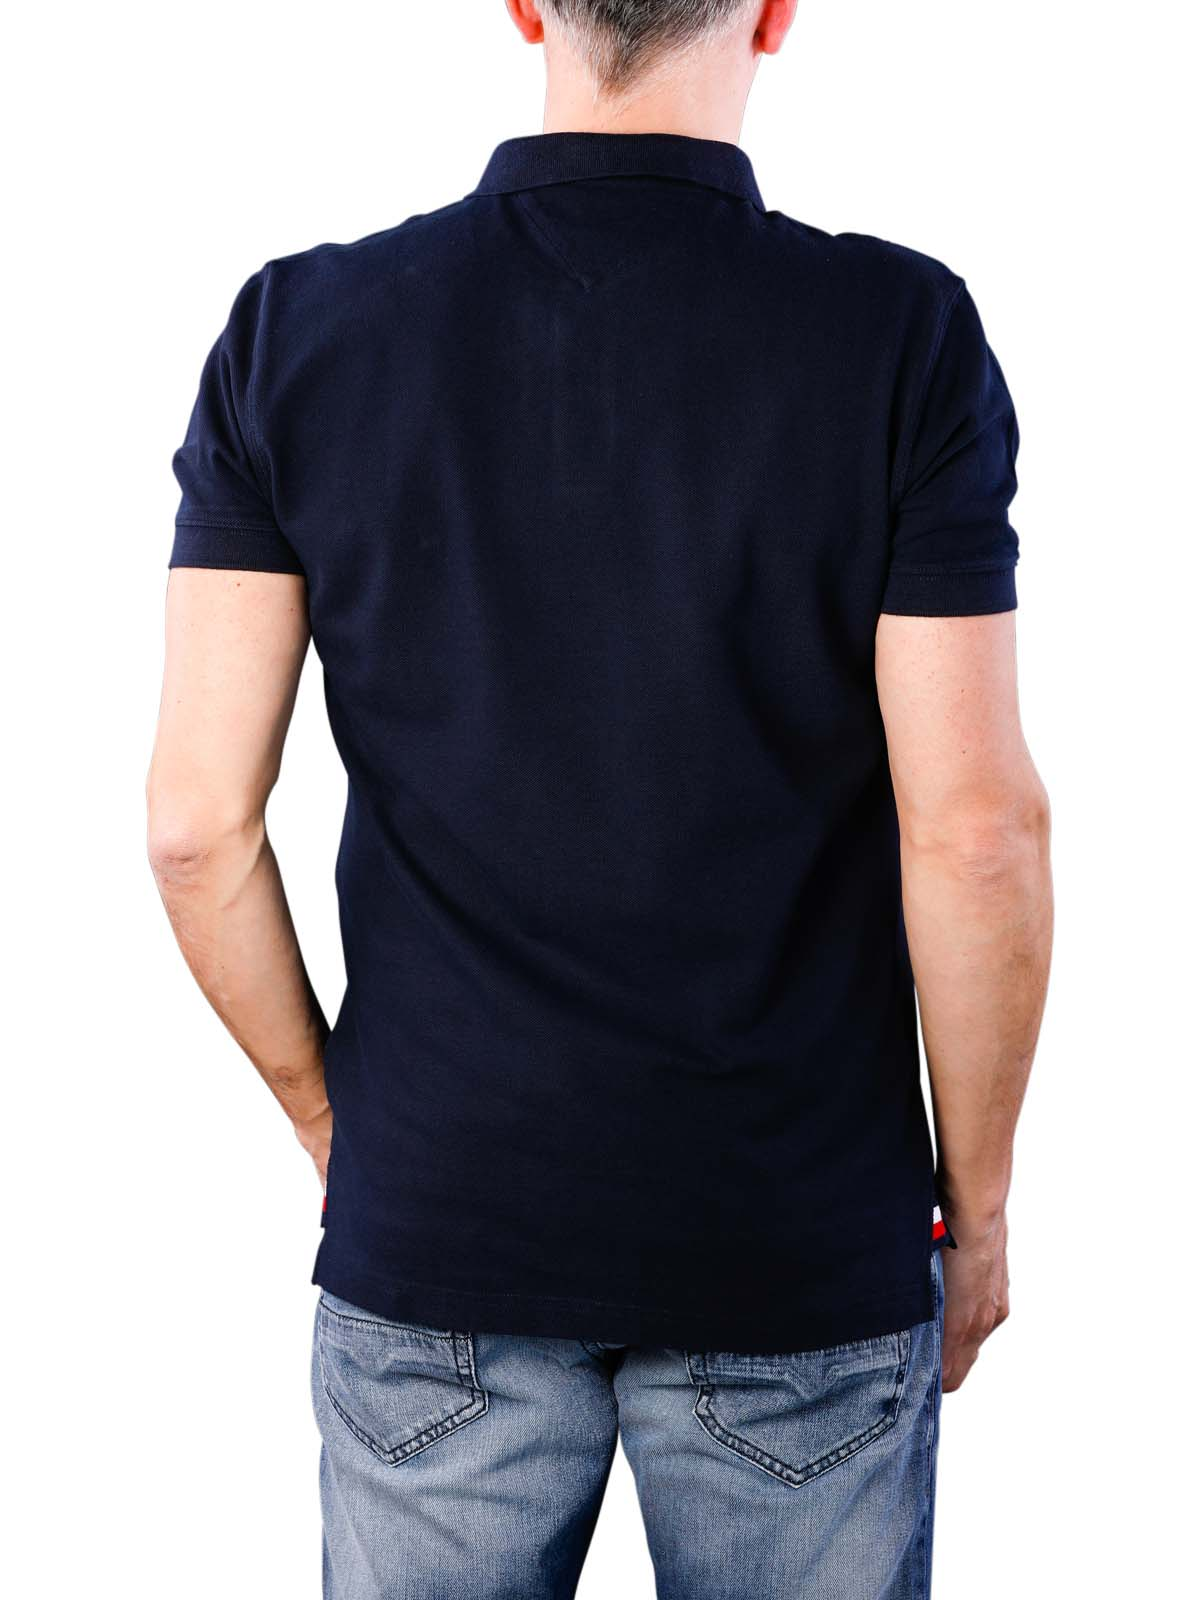 ce89a460e McJeans.ch - Fast Delivery | Tommy Hilfiger 1985 Regular Polo sky ...